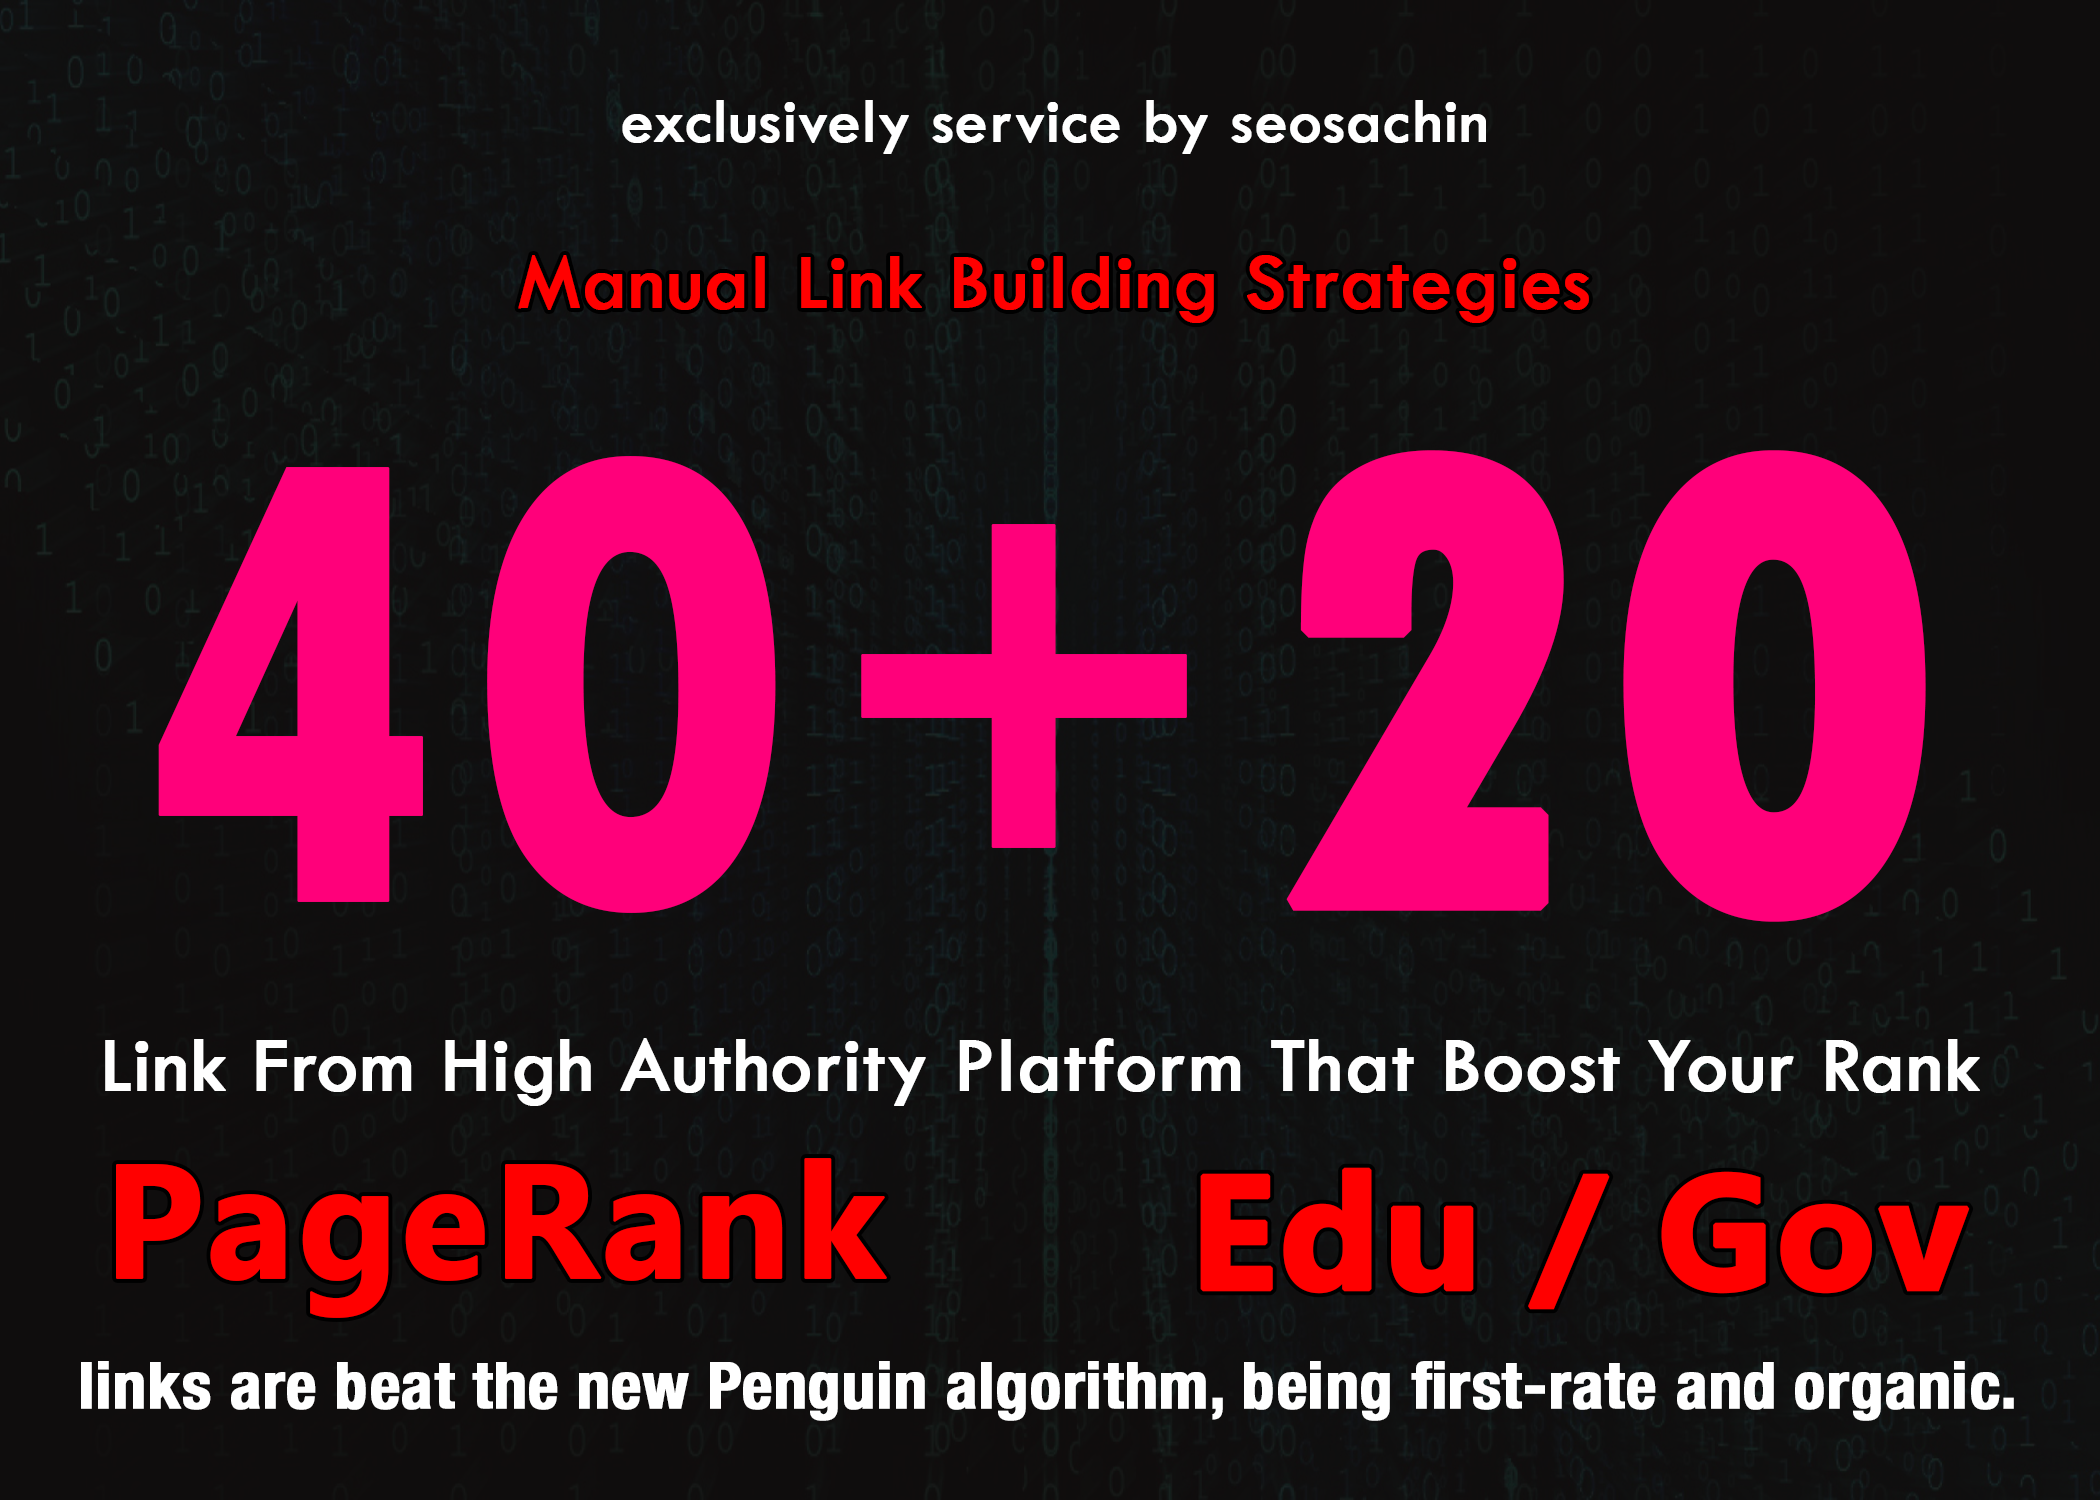 Skyrocket Your Google Rankings With 40 PR9 + 20 EDU GOV Permanent Backlinks From High Authority Domain